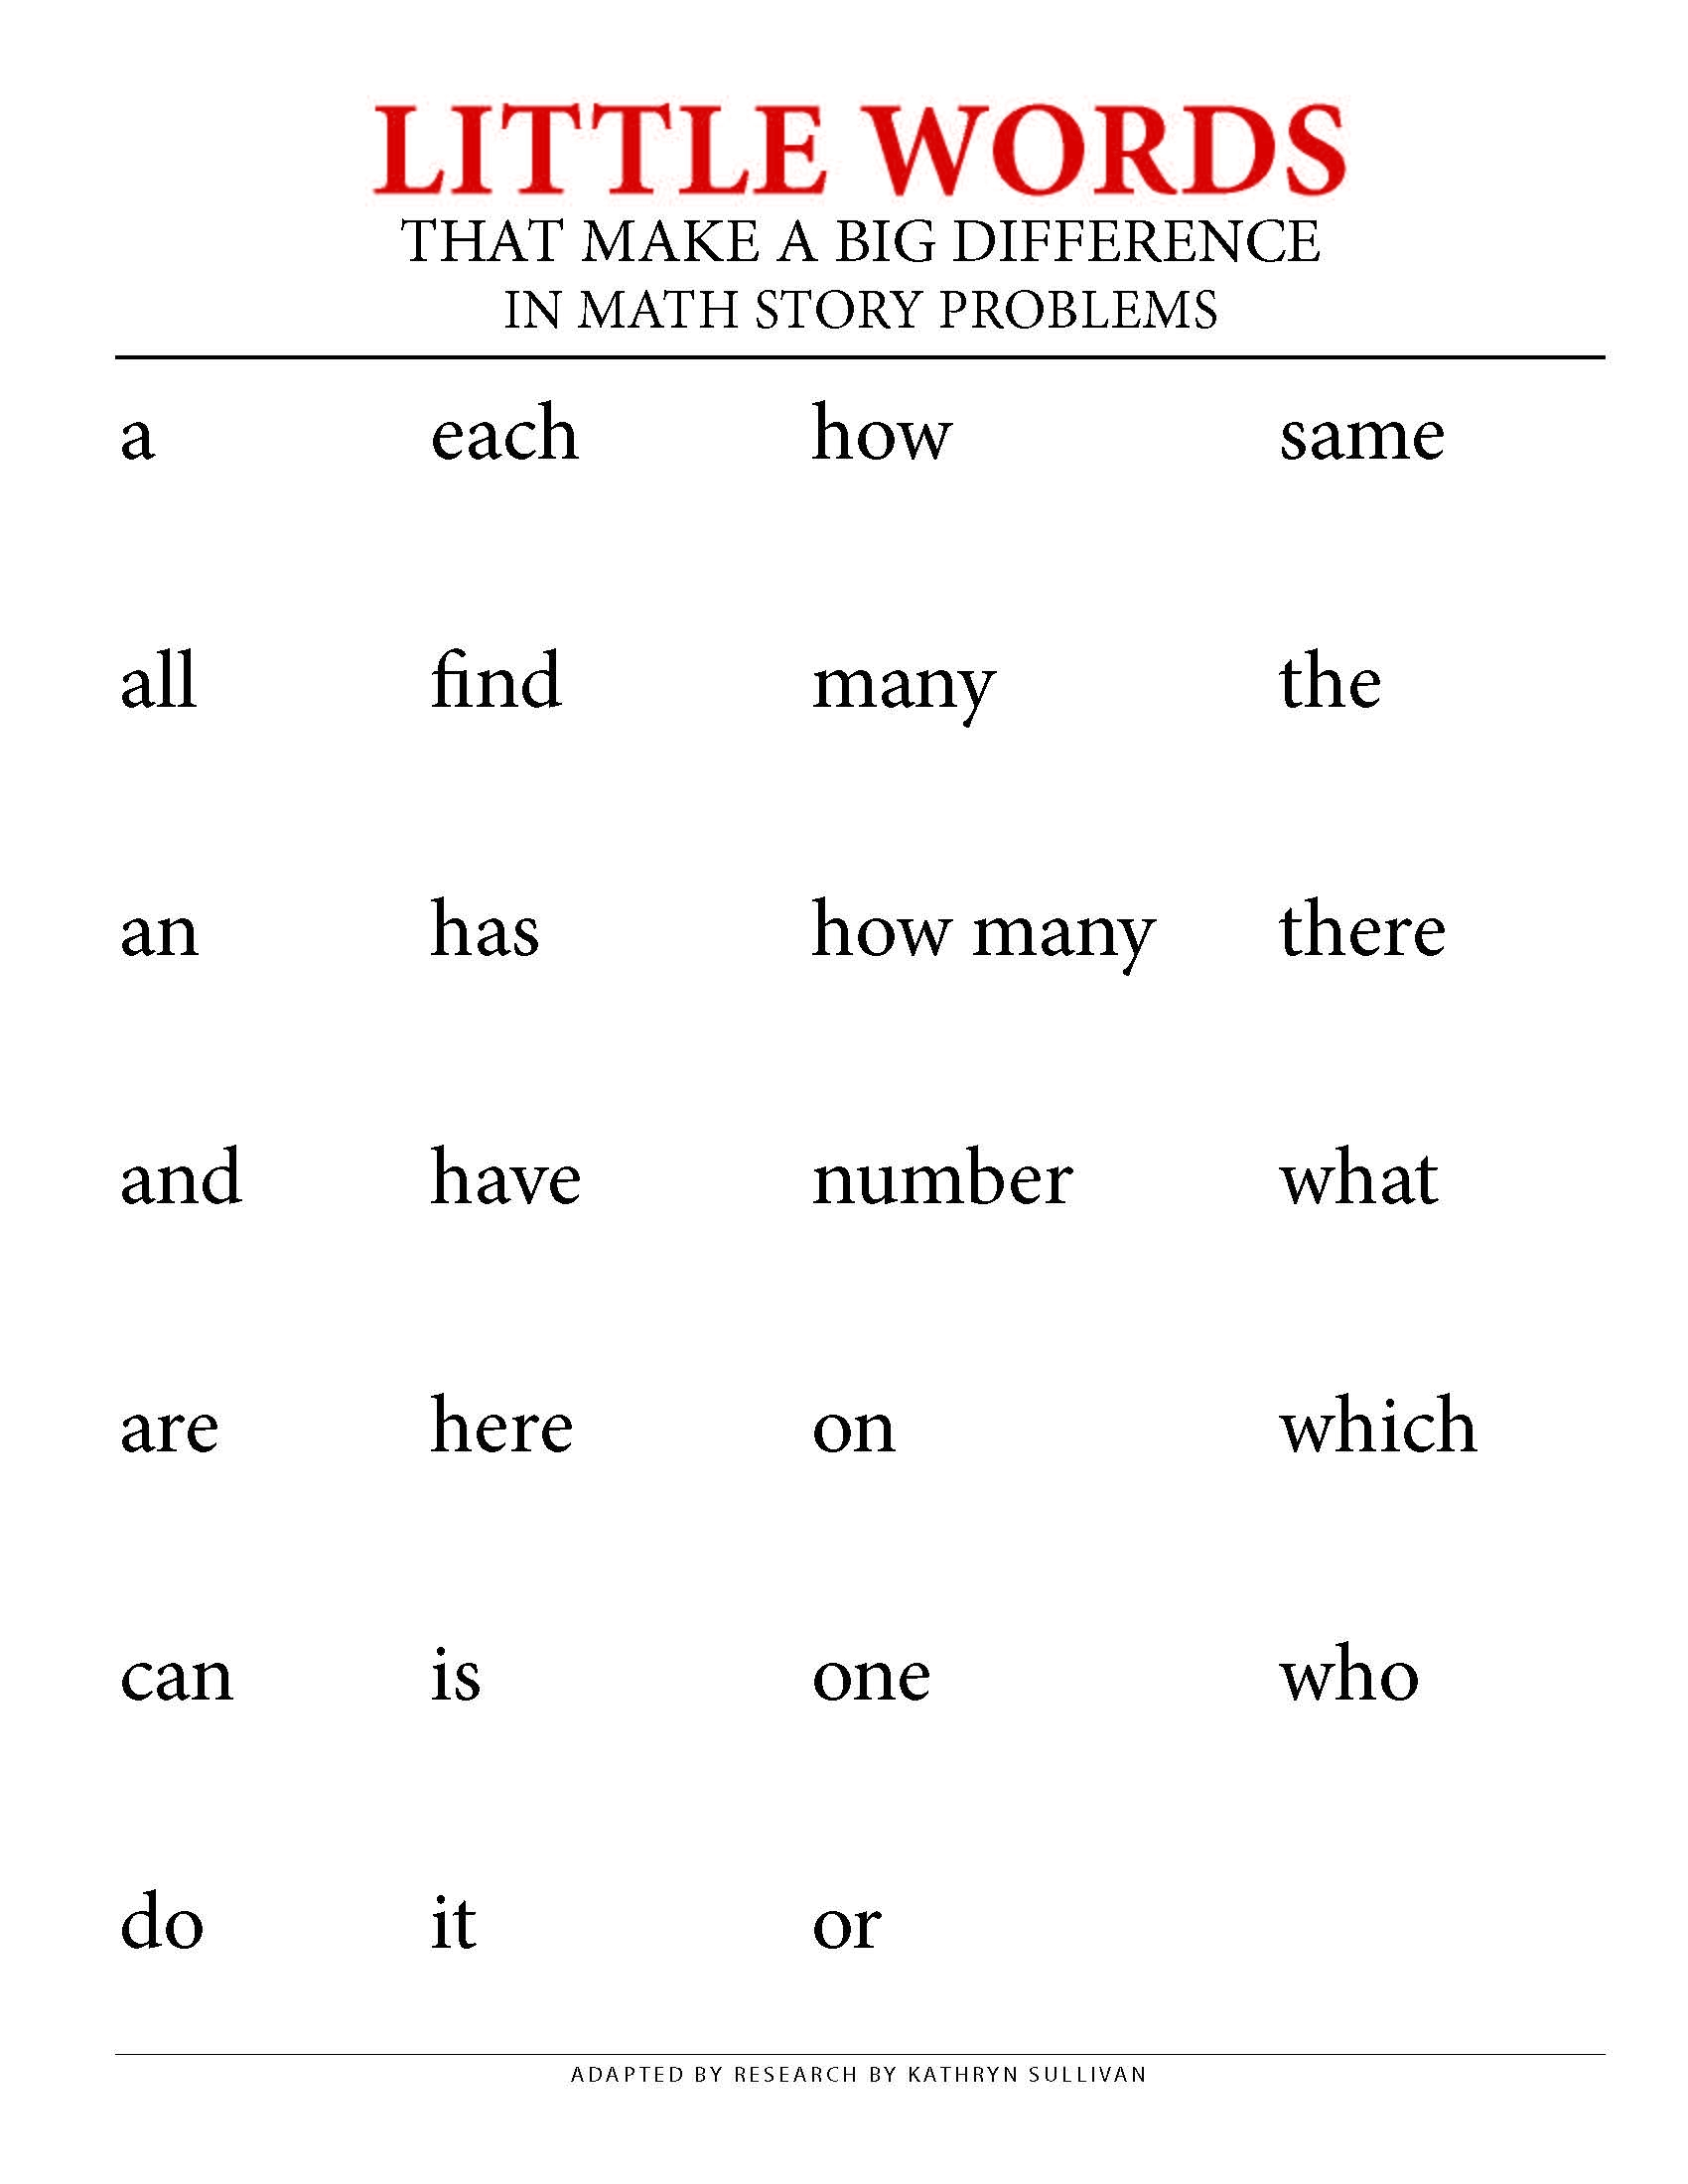 Student Handout - Little Words in Math Story Problems